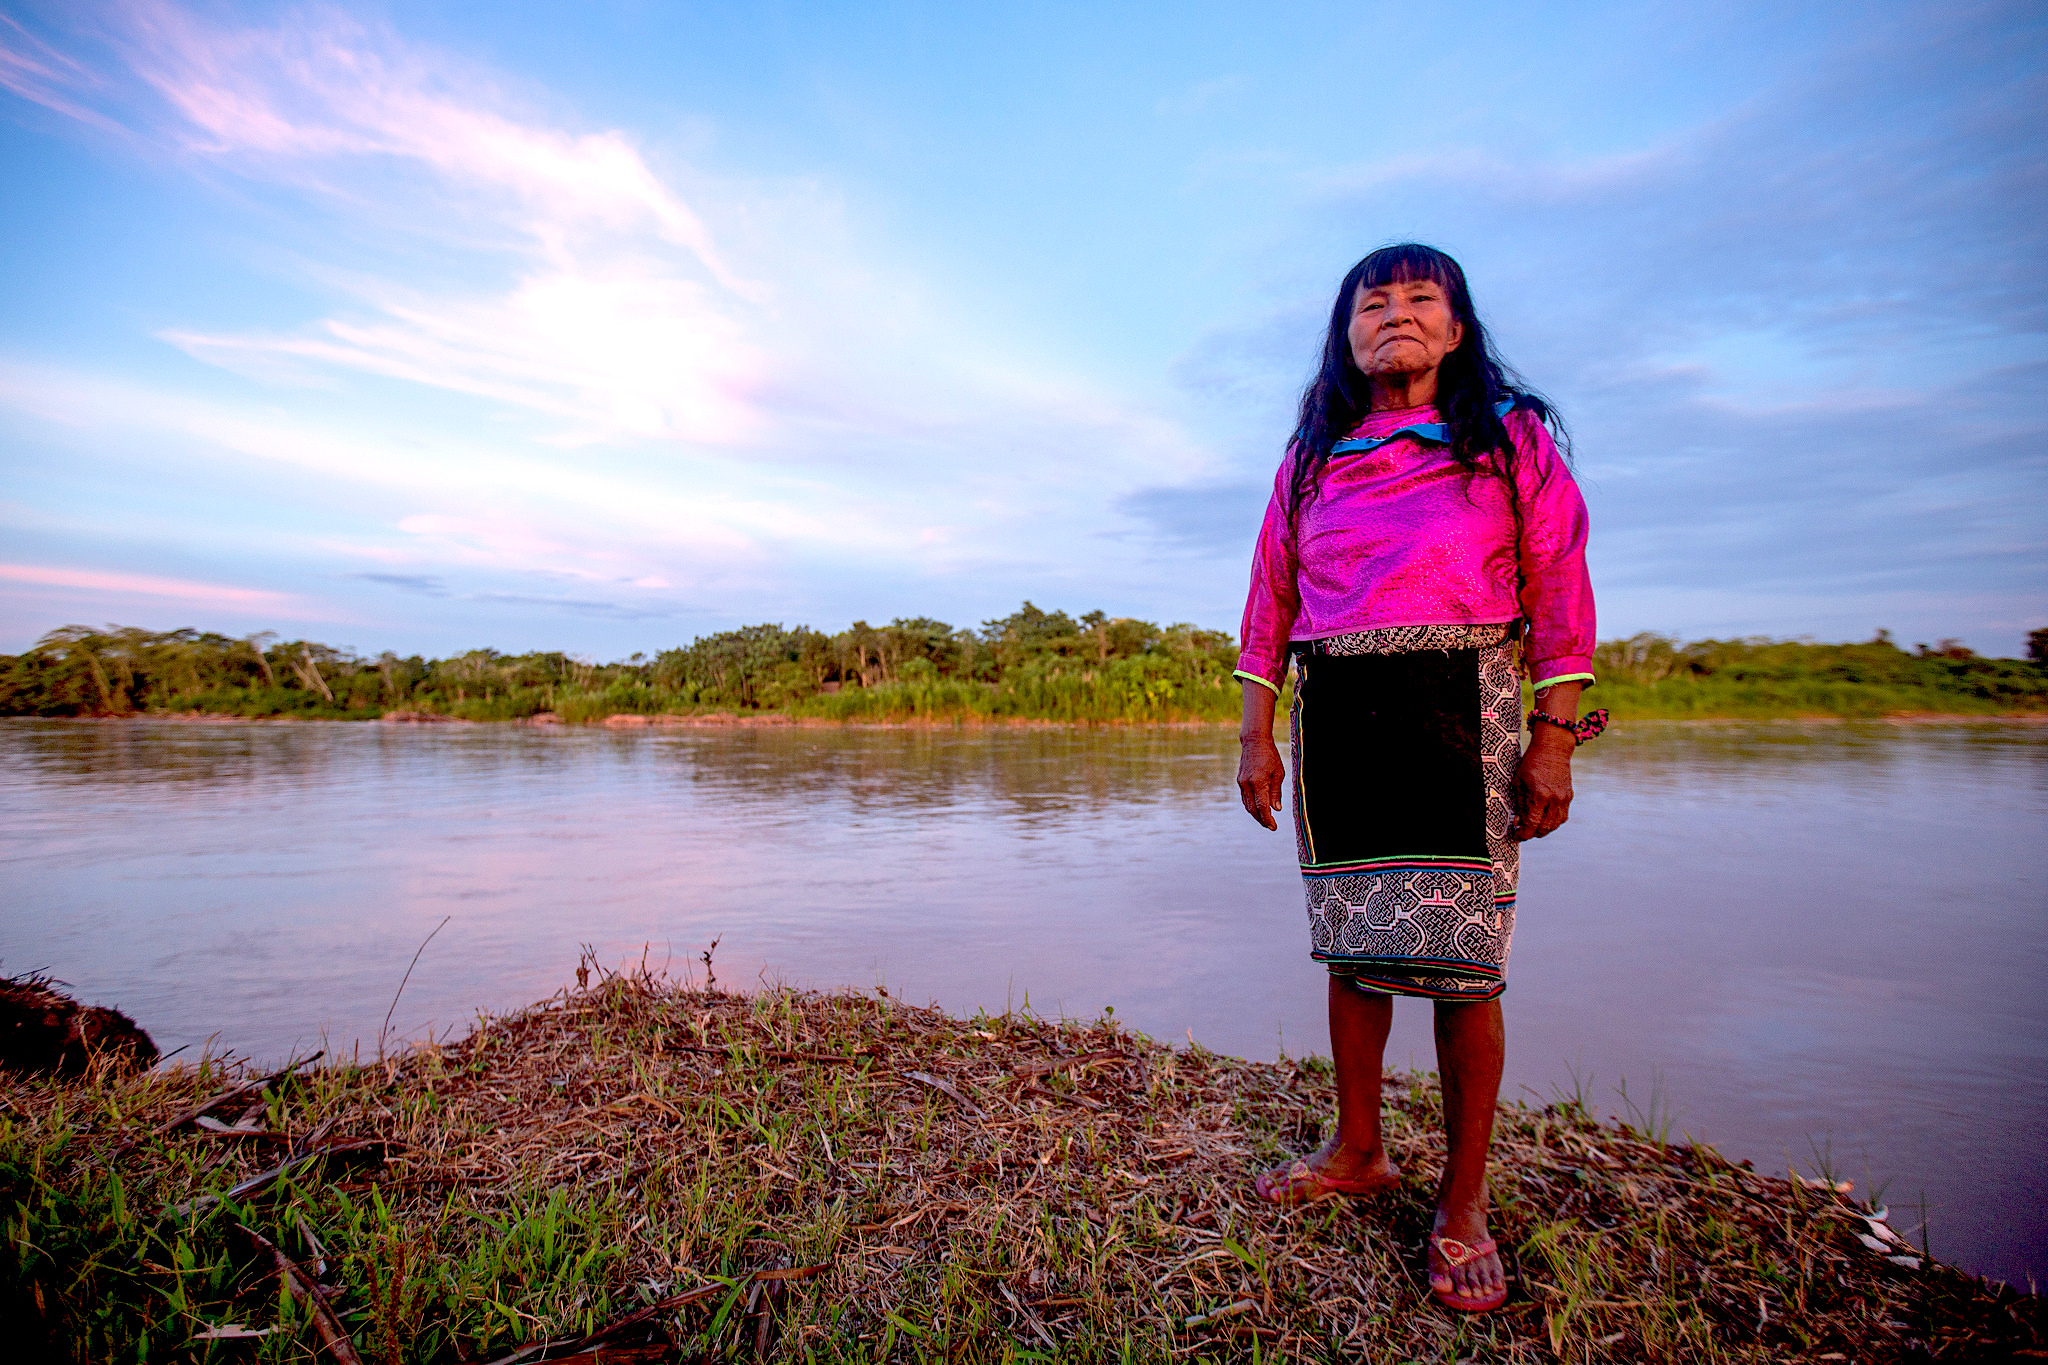 World Bank Land and Poverty Conference: Stand For Her Land